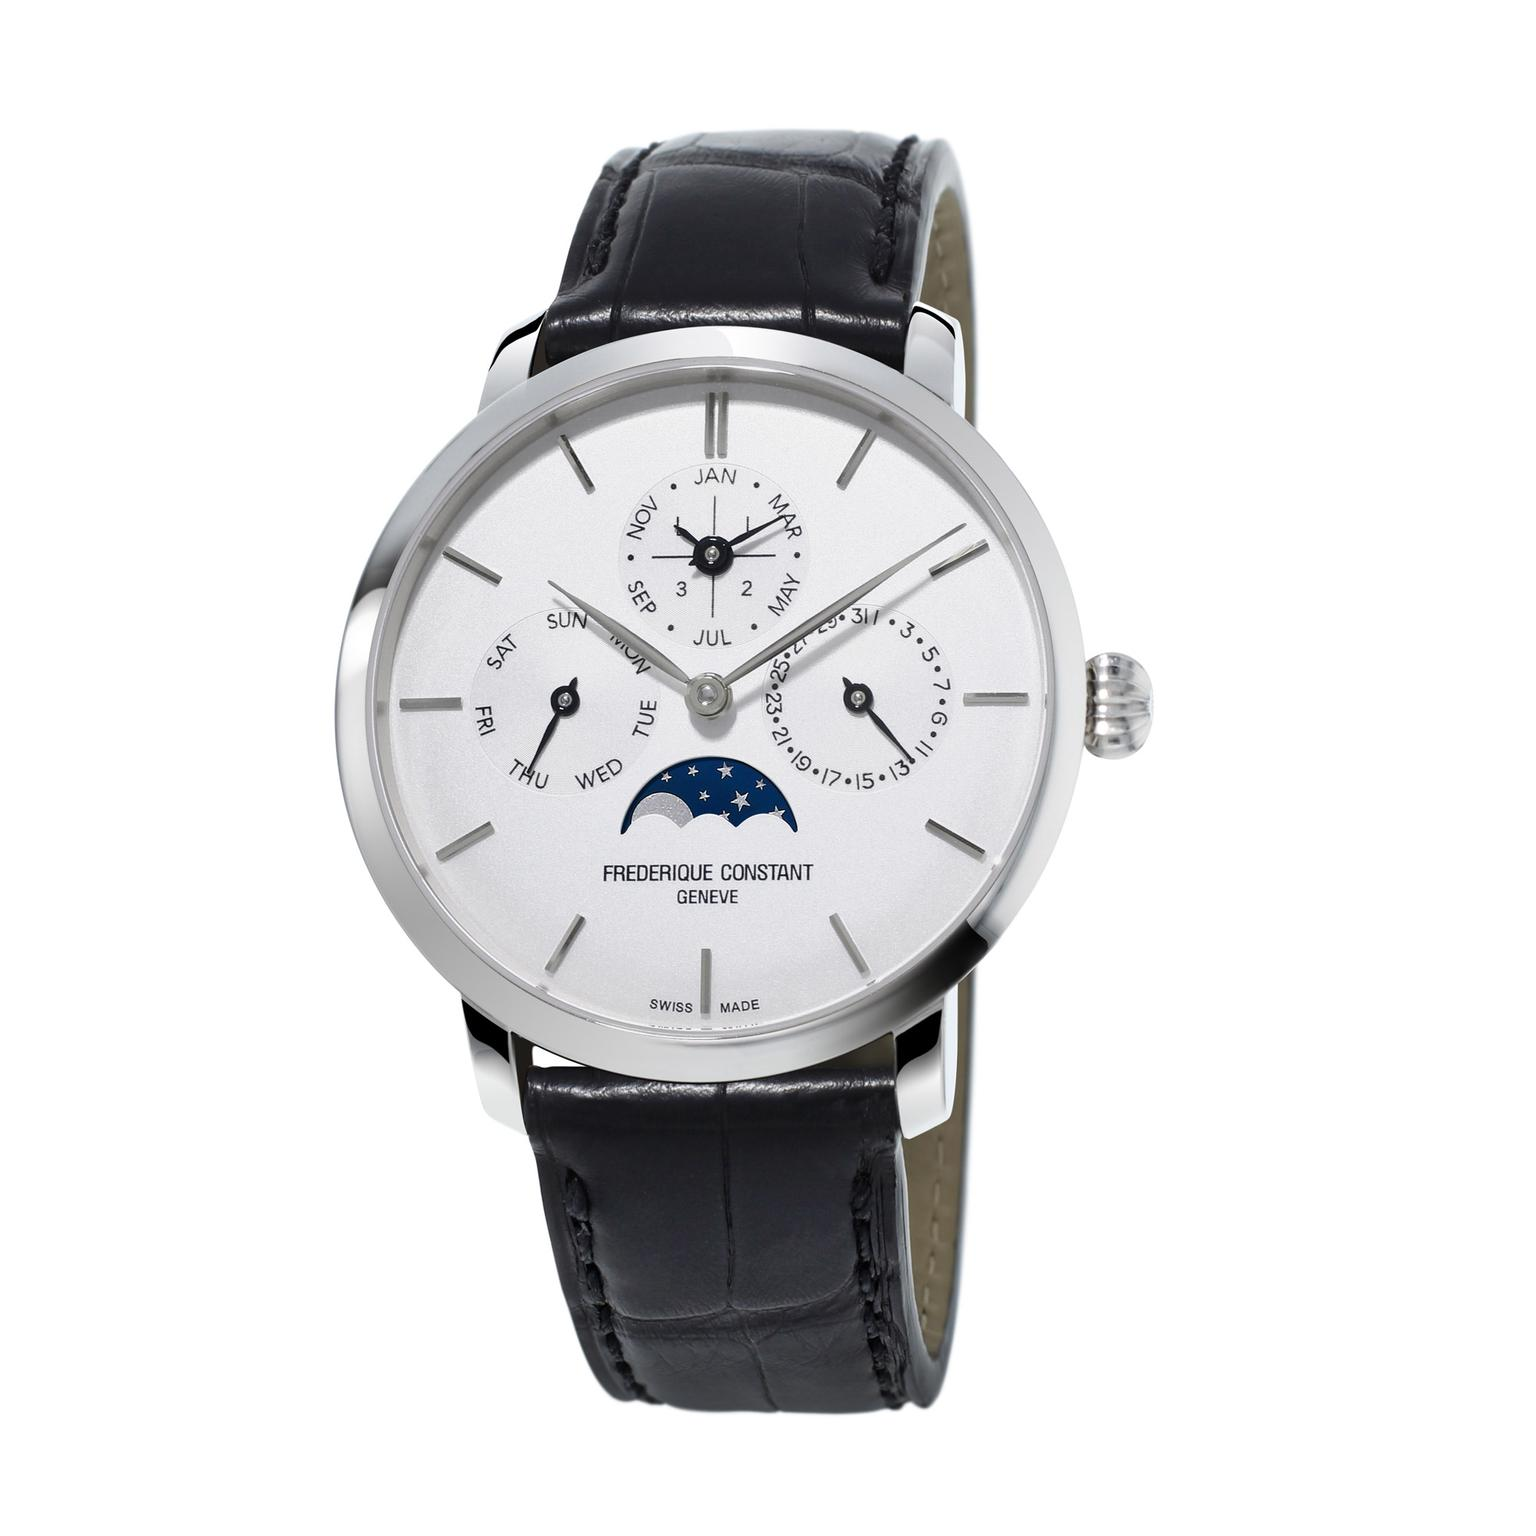 Frederique Constant Perpetual Calendar stainless steel watch